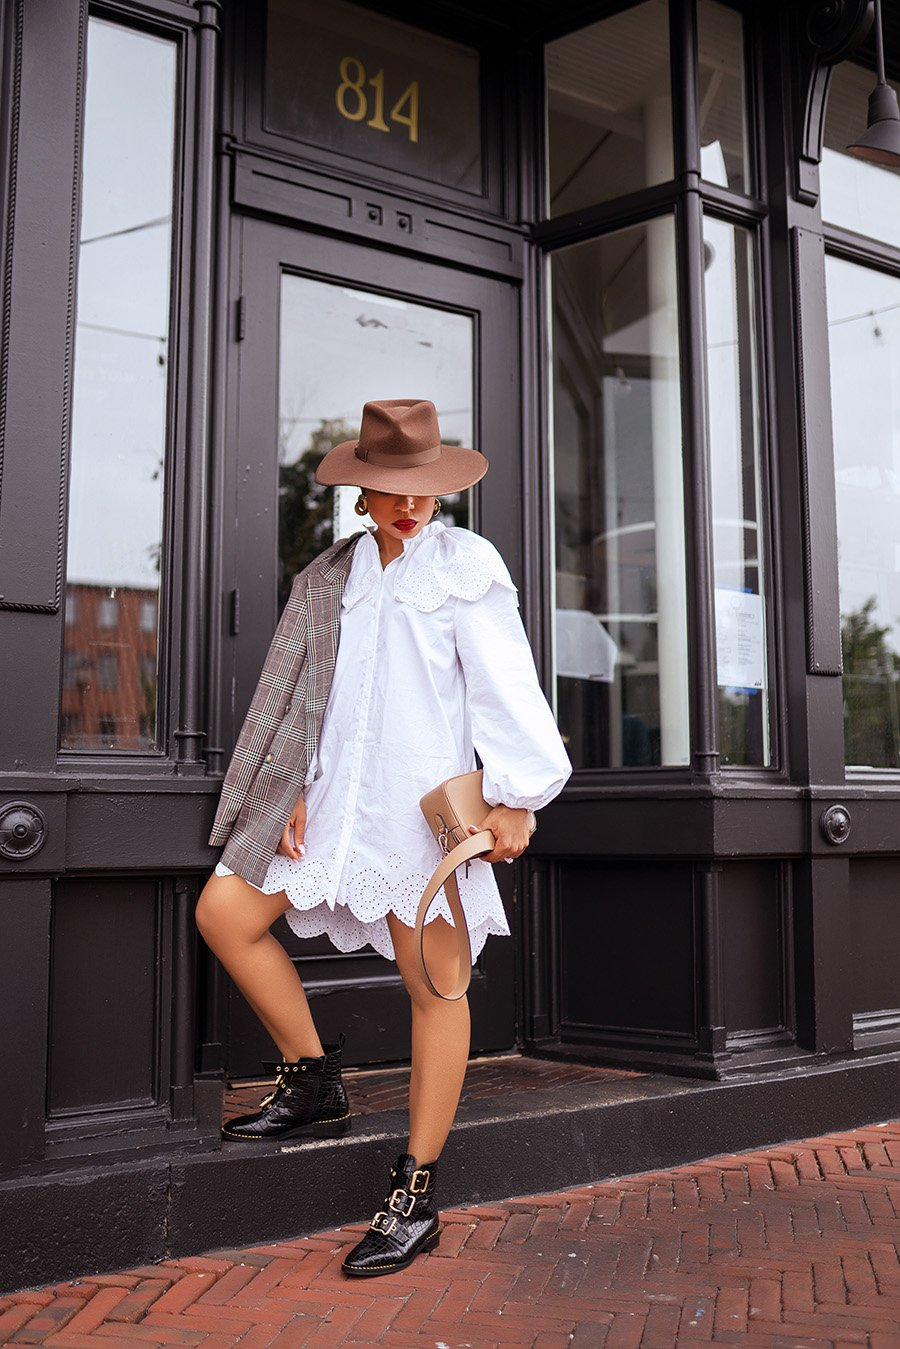 stella-adewunmi-of-jadore-fashion-blog-shares-how-to-transition-your-summer-dress-into-fall